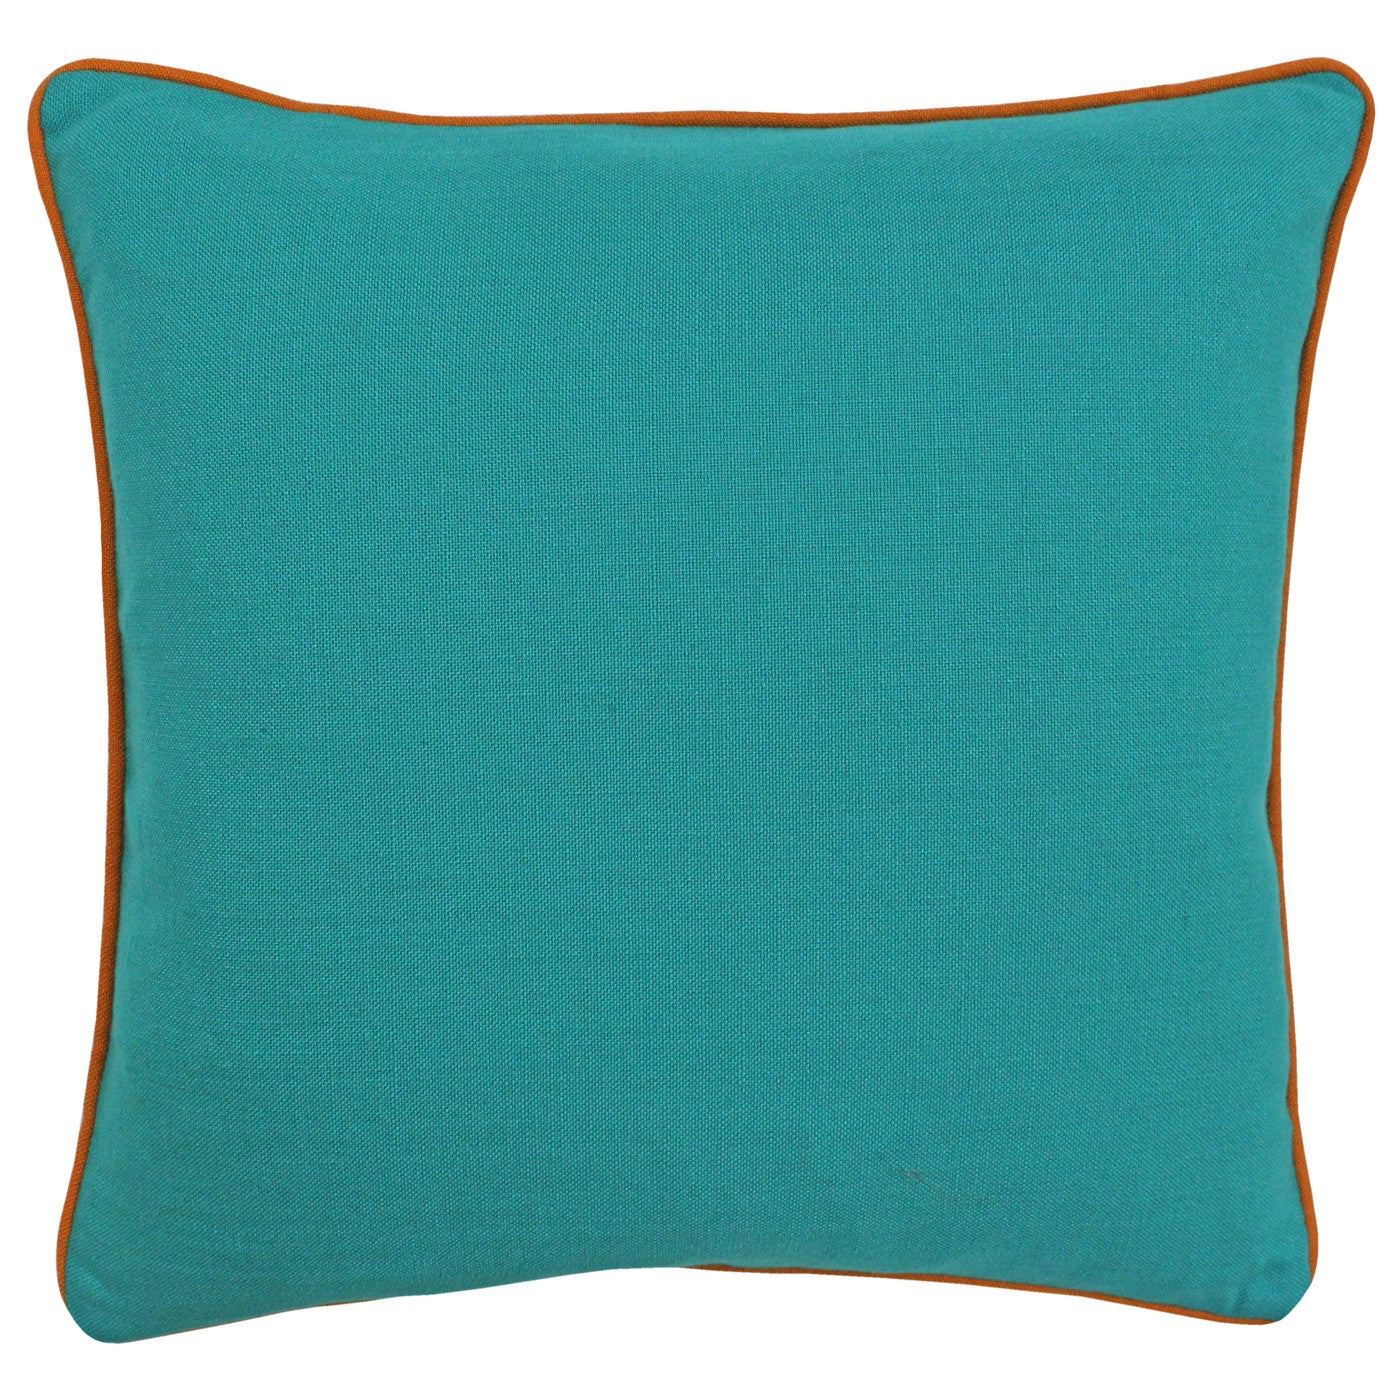 Brand new turquoise cushion with orange piping